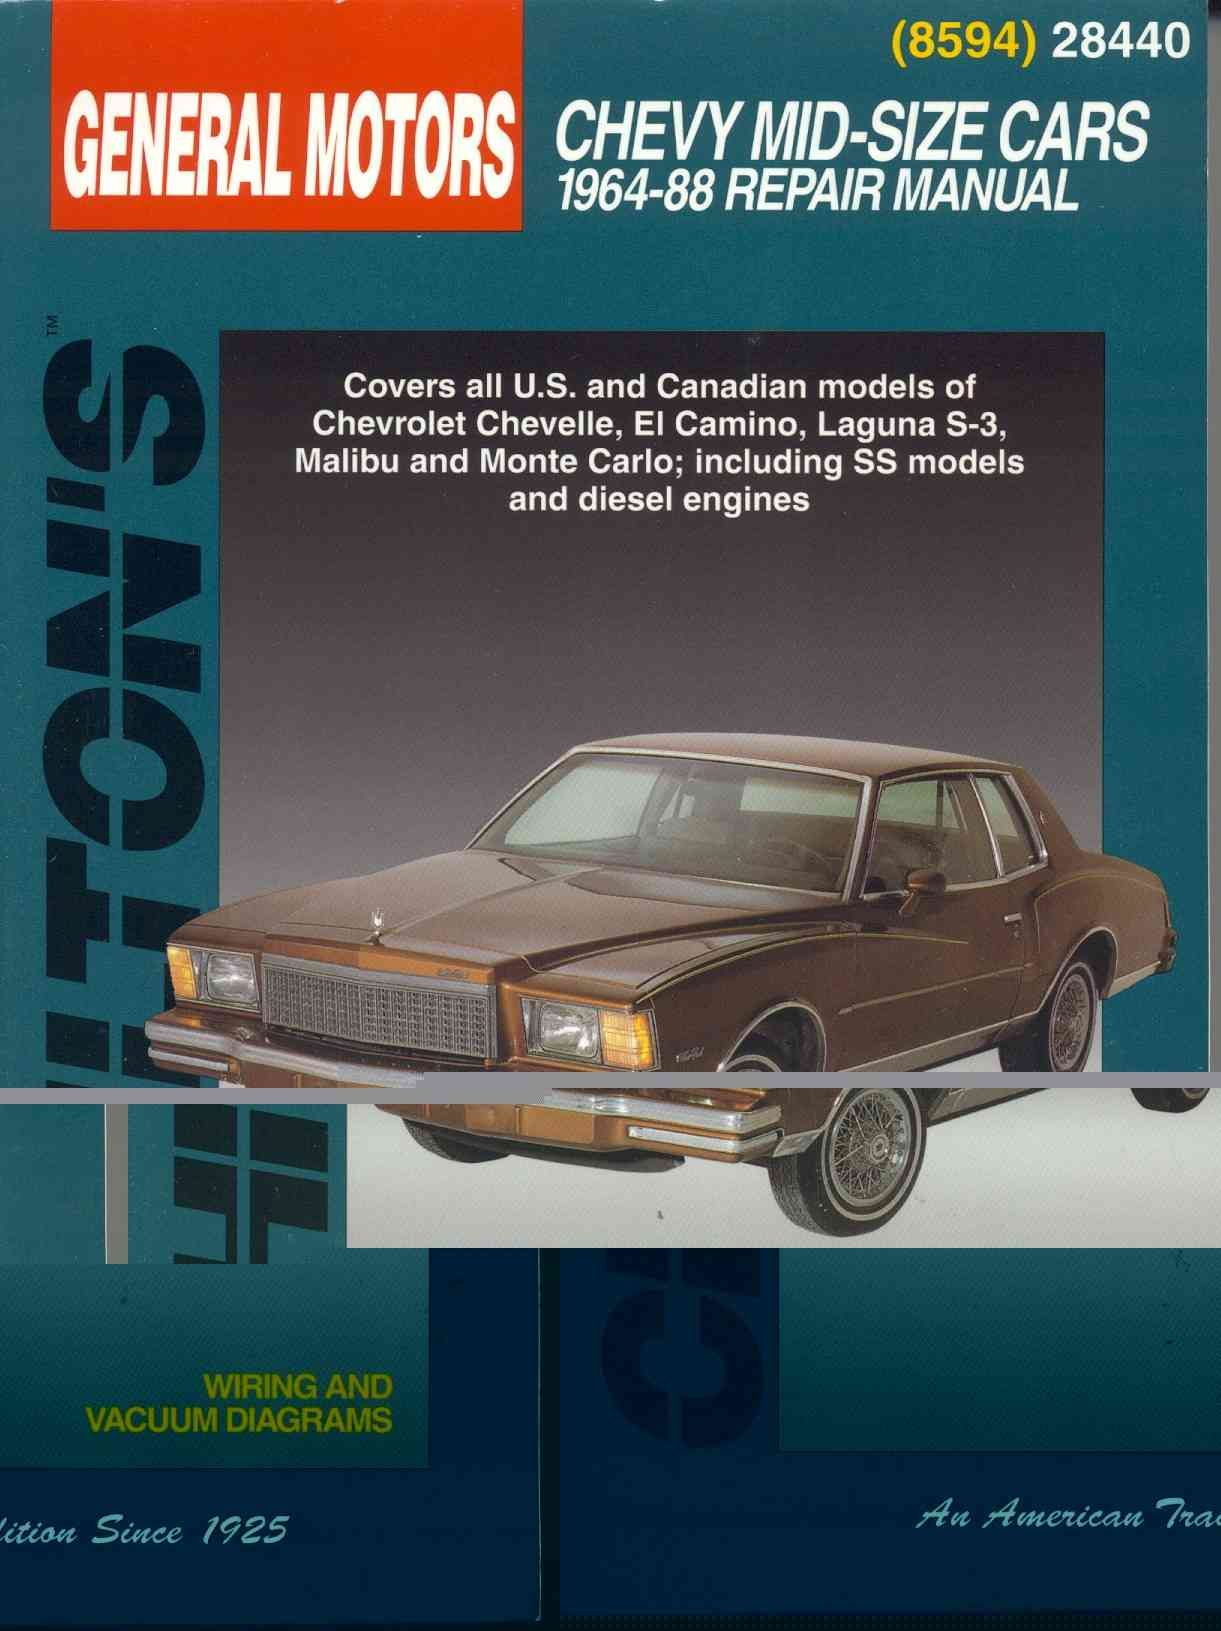 Chiltons general motors chevy mid size cars 1964 88 repair chiltons general motors chevy mid size cars 1964 88 repair manual paperback by precision series fandeluxe Choice Image